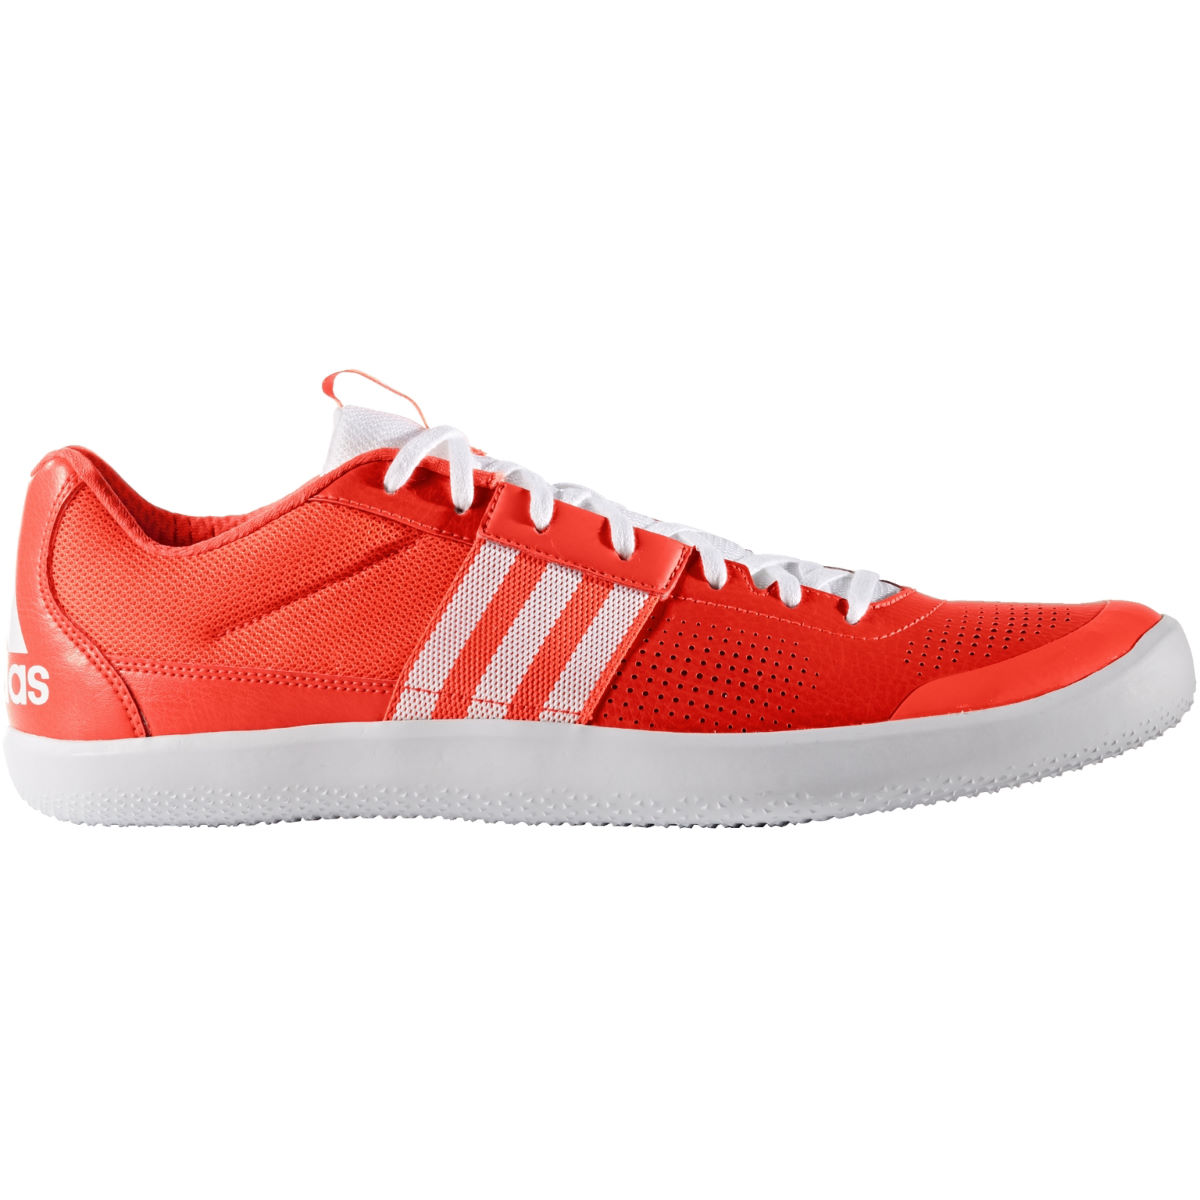 Chaussures adidas Throwstar - 7,5 UK Rouge/Blanc